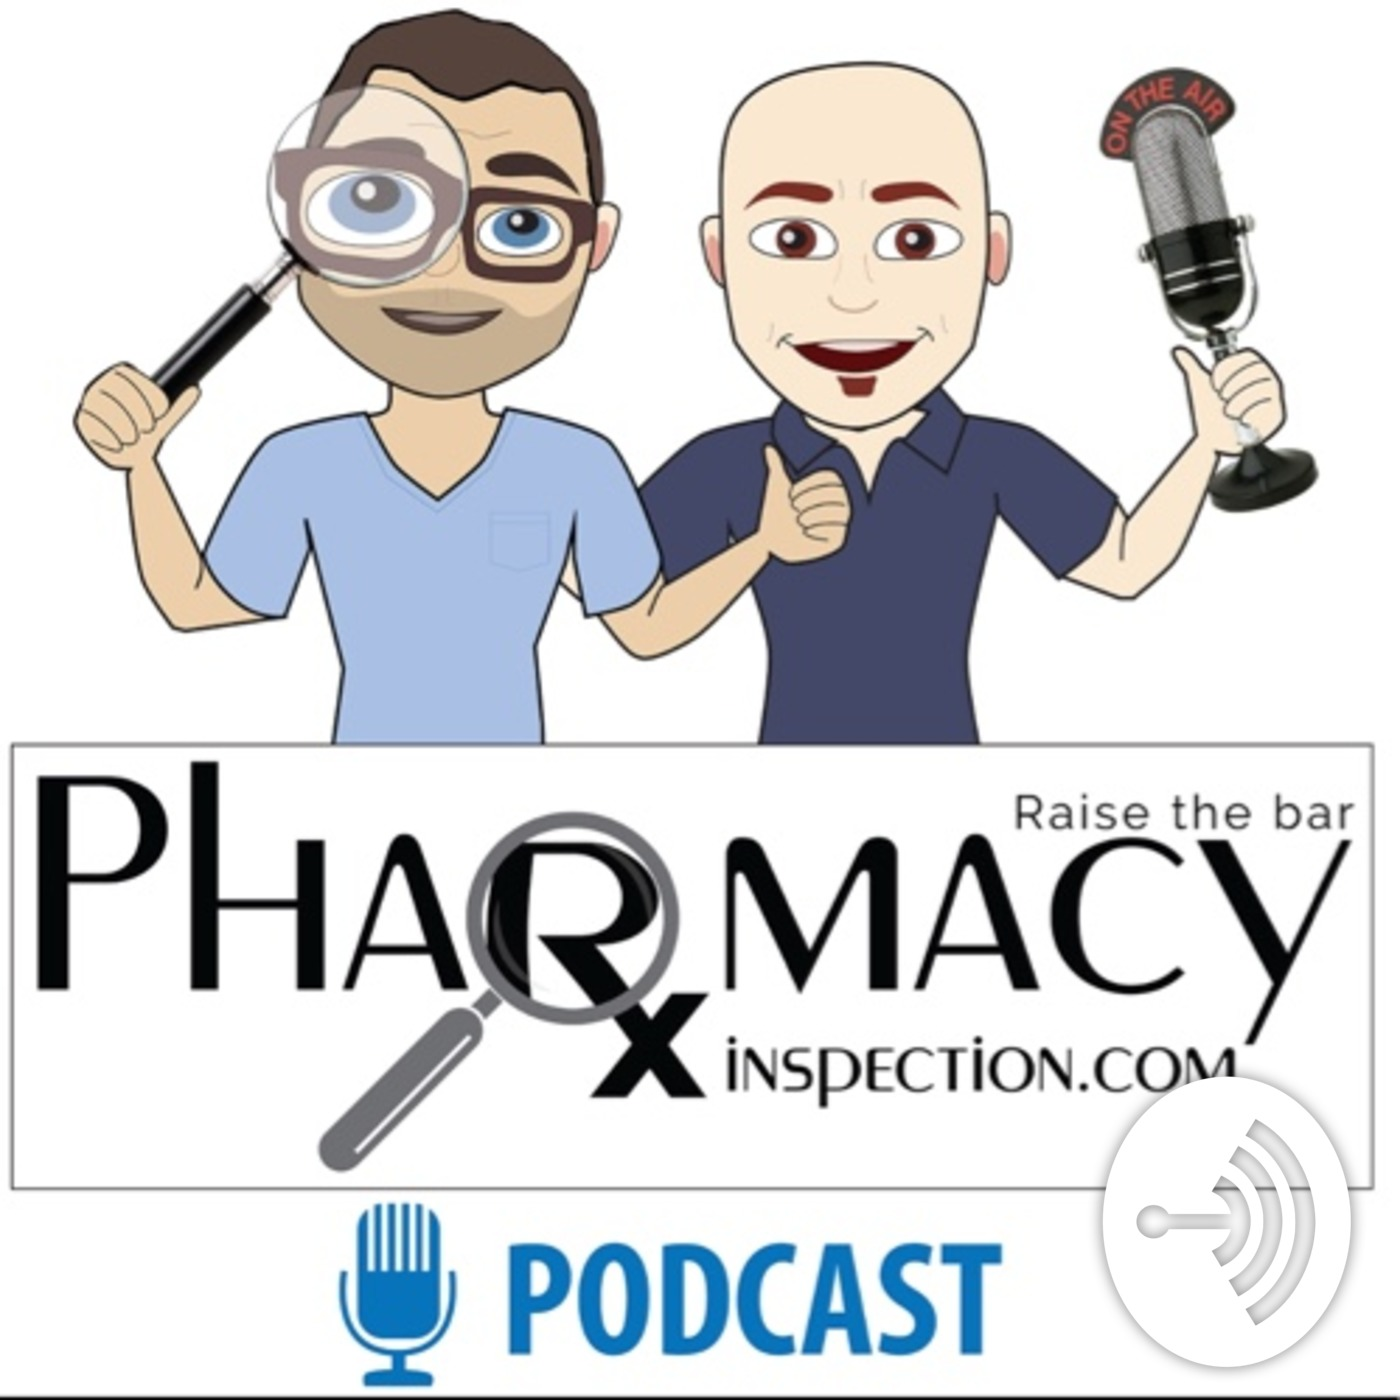 Pharmacy Inspection Podcast Ep 16 - Bryan & Seth talk PPE